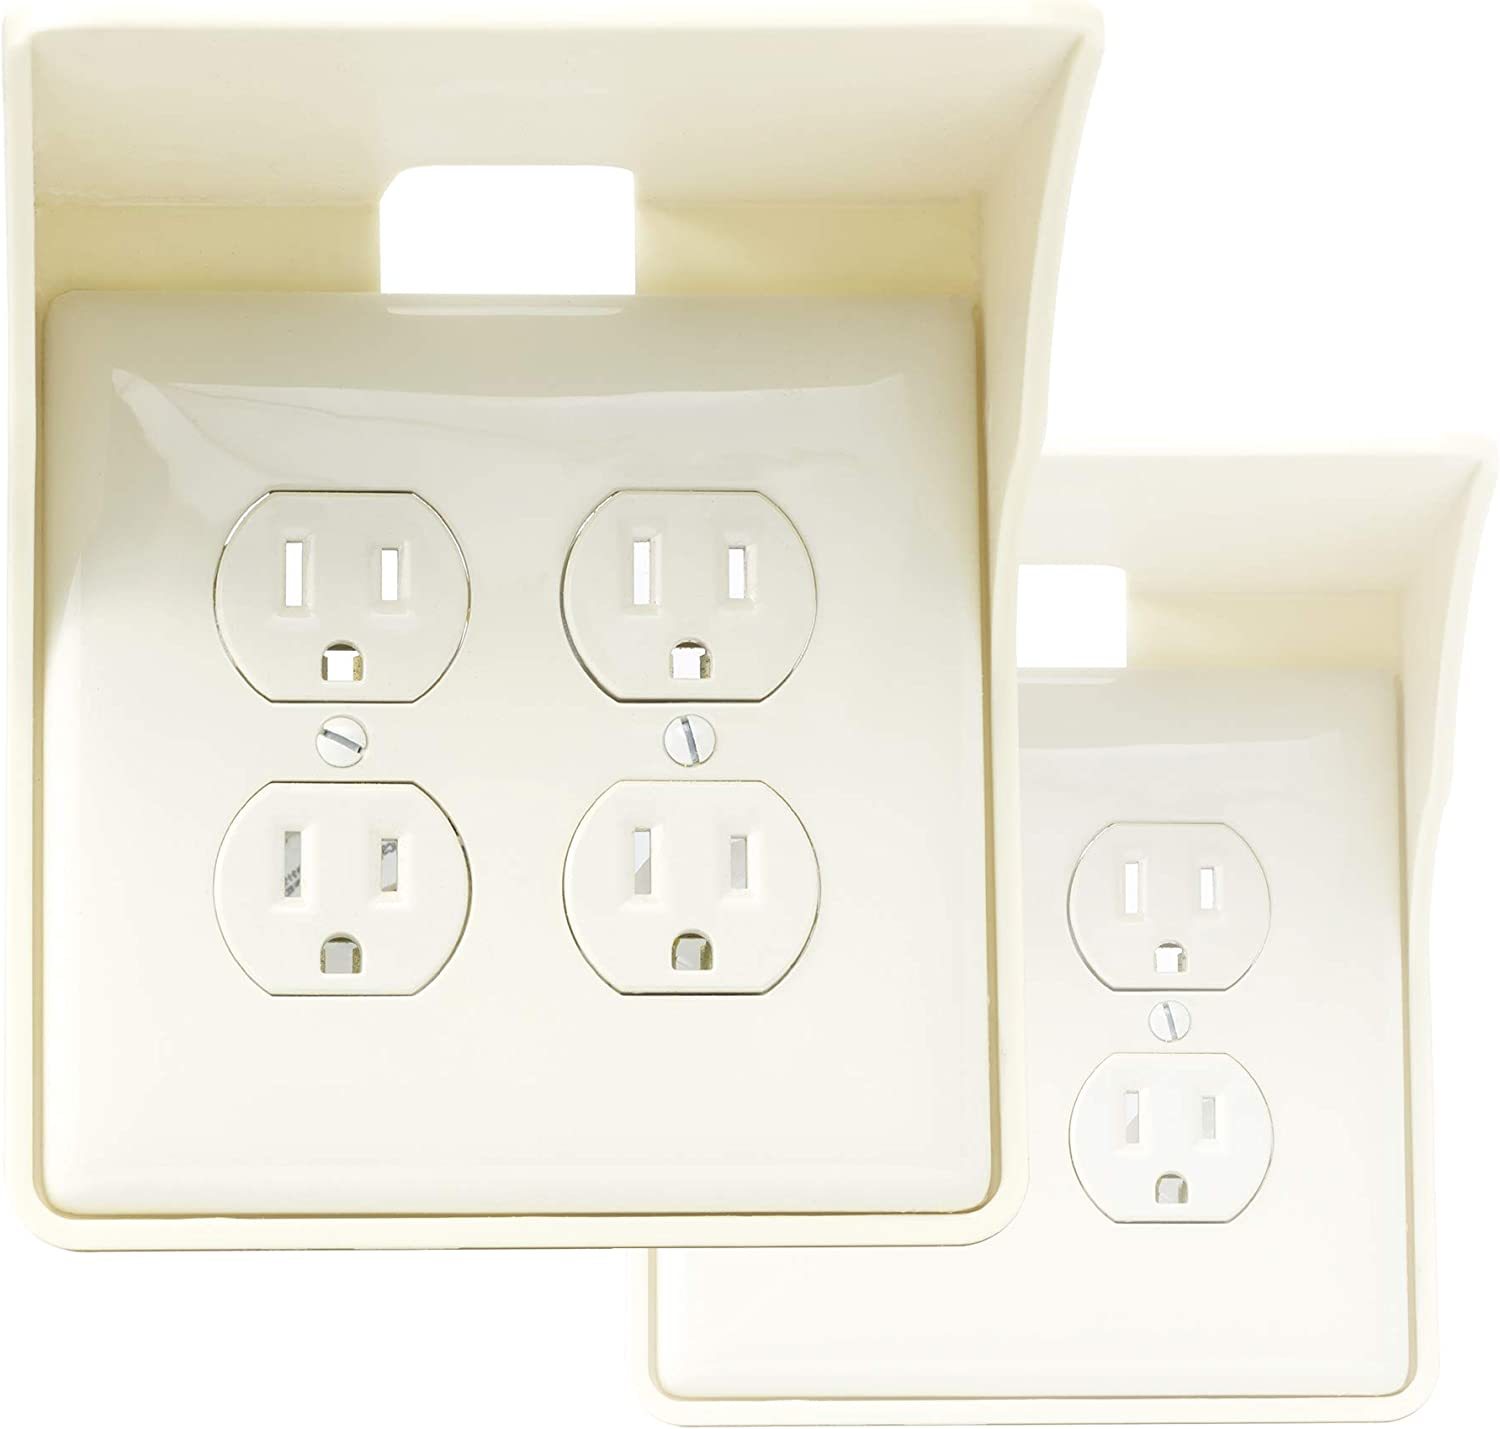 Storage Theory   Double Outlet Power Perch   Ultimate Outlet Shelf   Easy Inssizetion, No Additional Hardware Required   Holds Up to 10lbs   Light Almond color   2 Pack